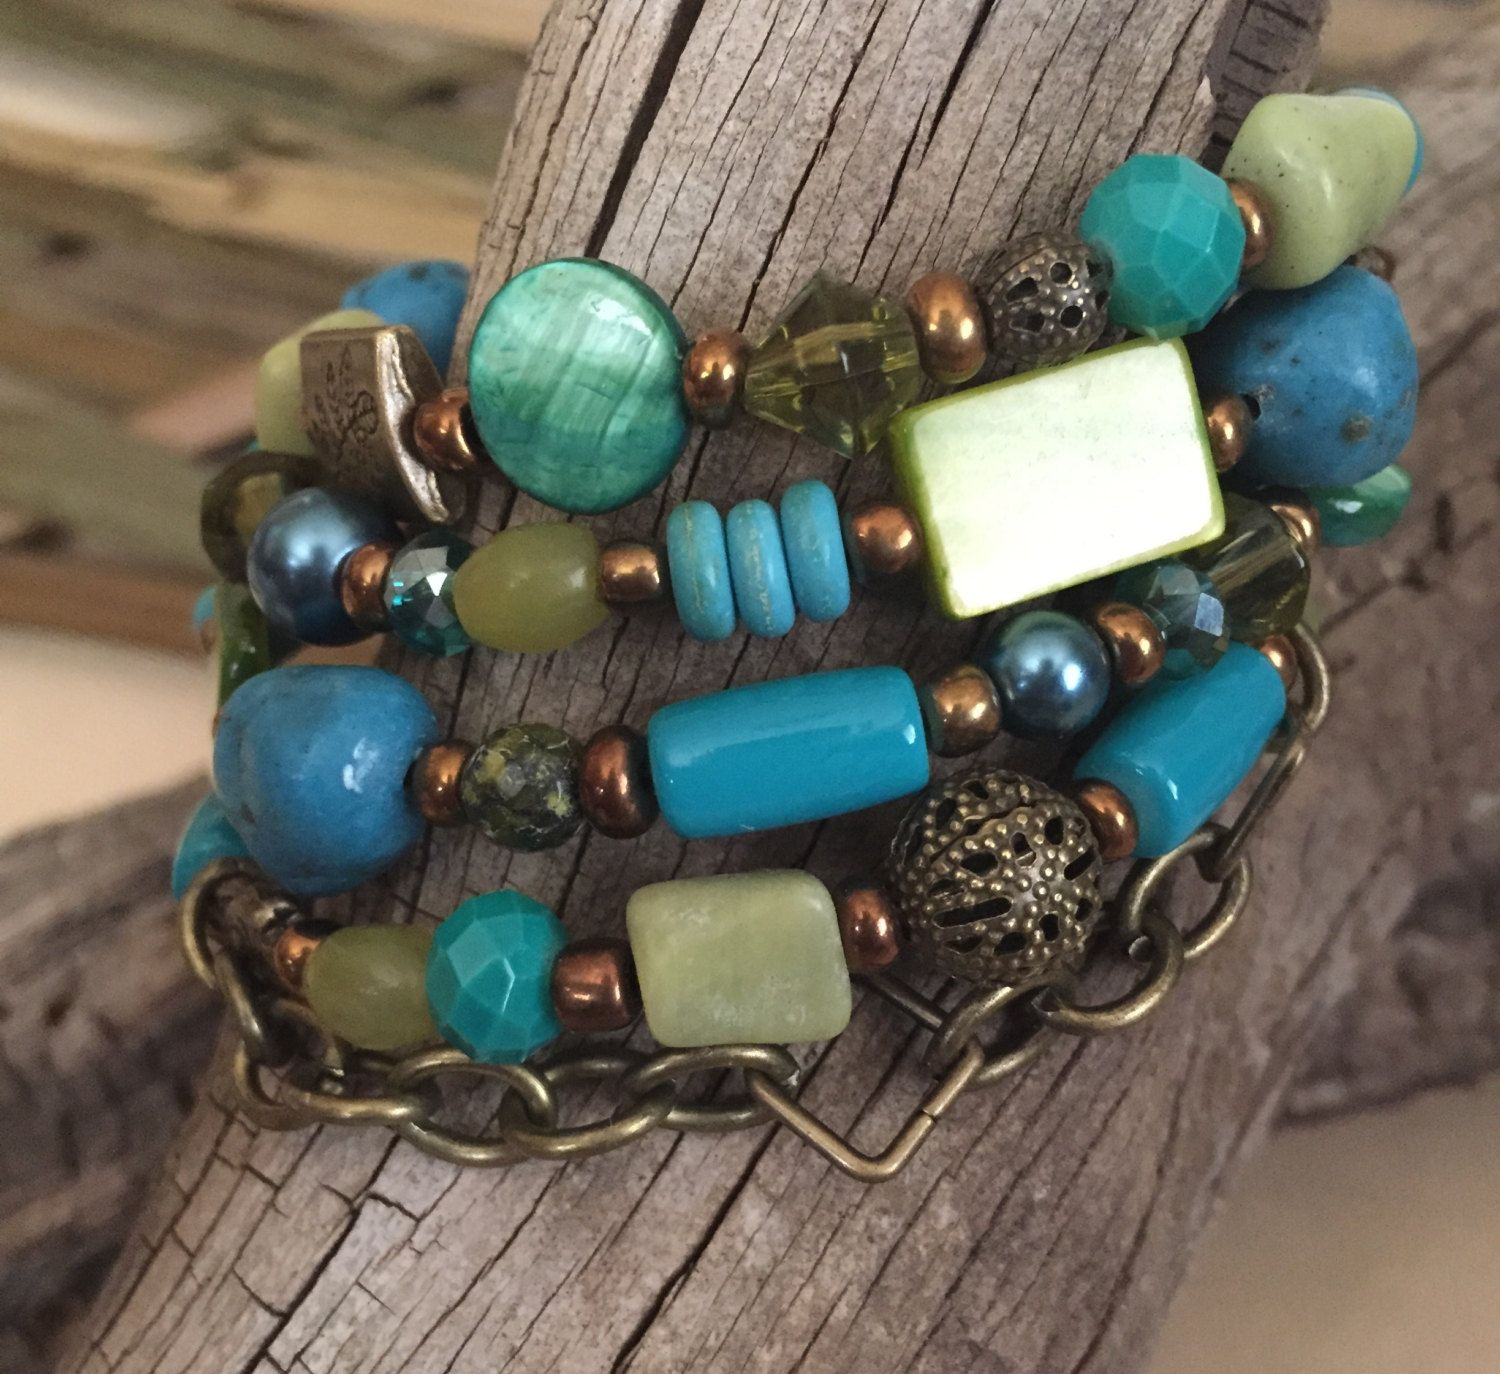 Turquoise, Blue, Teal, Green and Bronze Chain Beaded Coil Bracelet by PeacocksandLeopards on Etsy $27